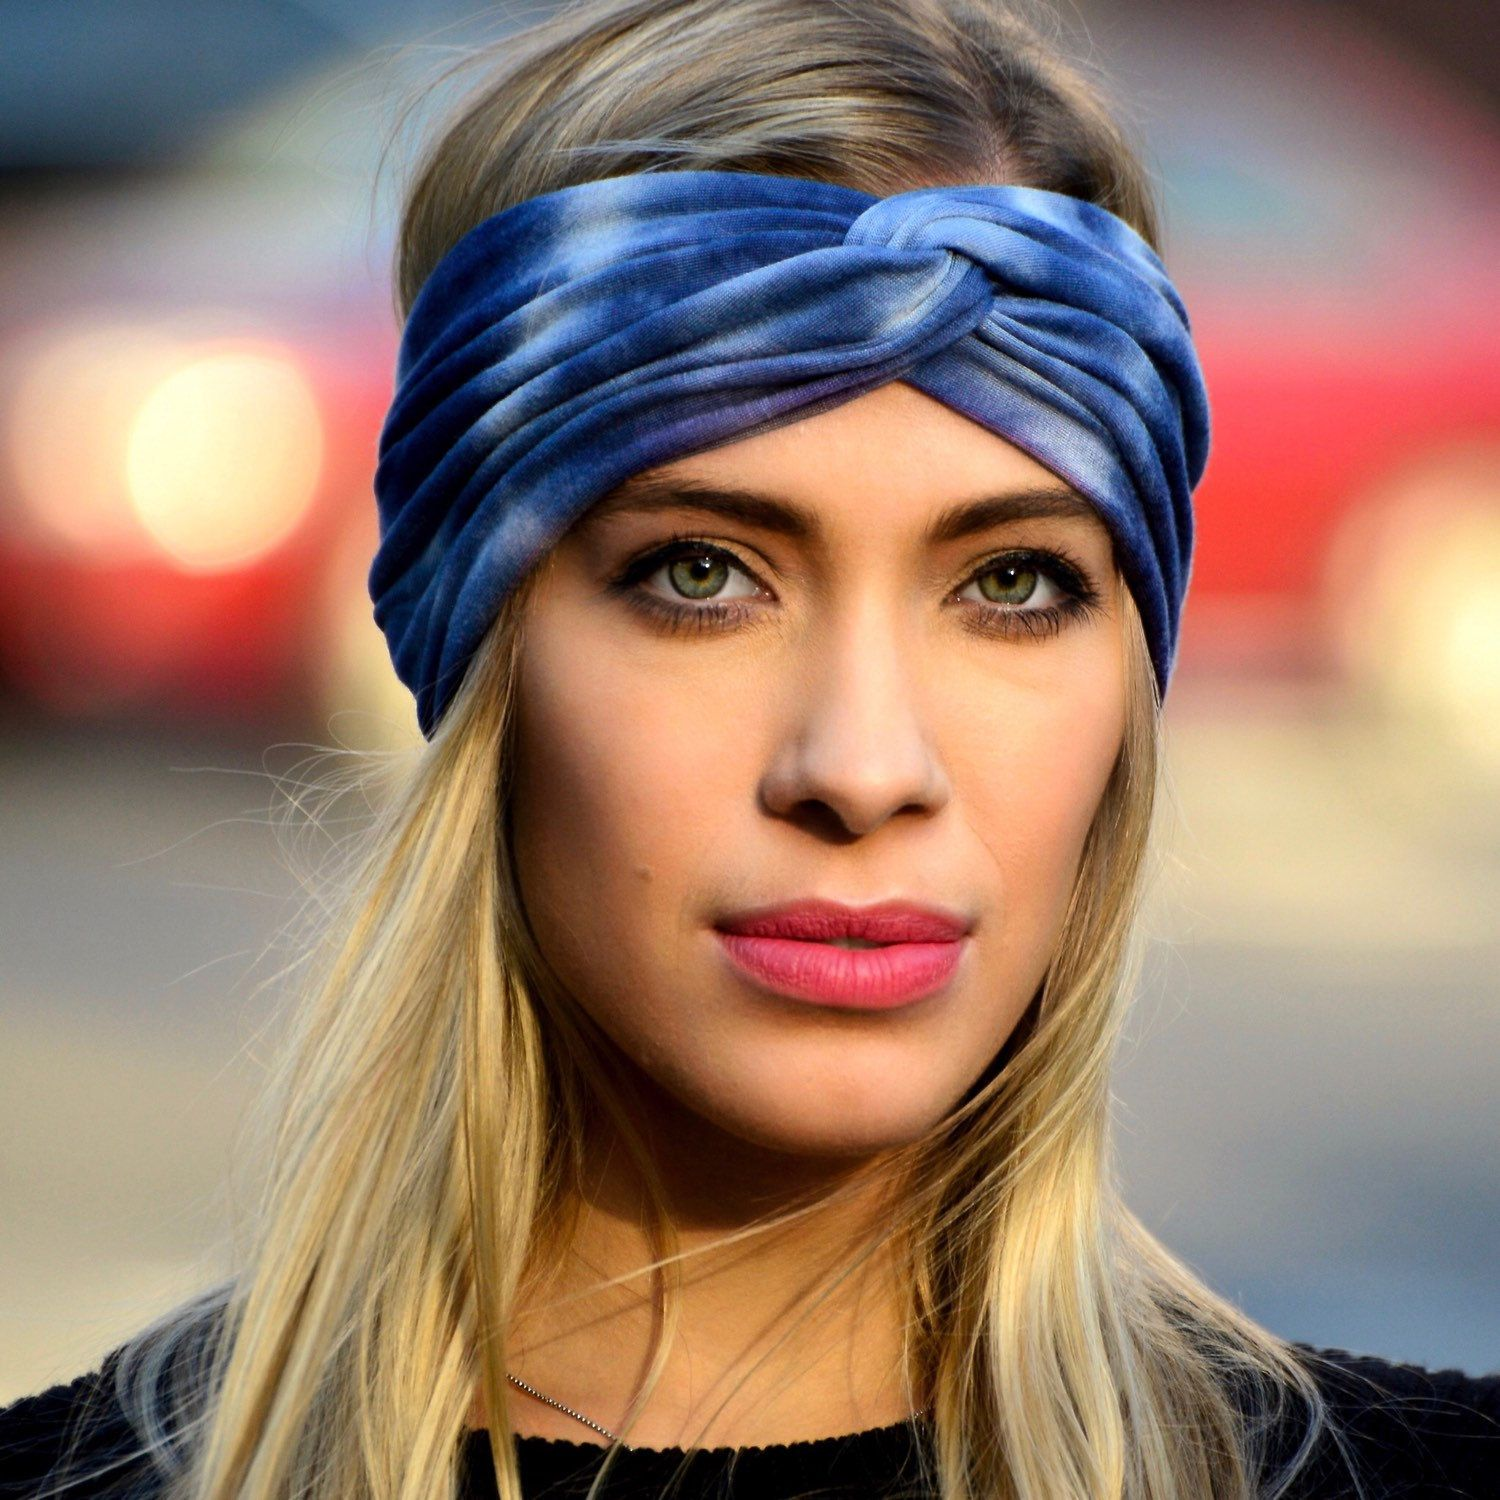 1f8d6278630 Boho Headband Tiedye Turban Headband Gift For Her Spring Fashion ...